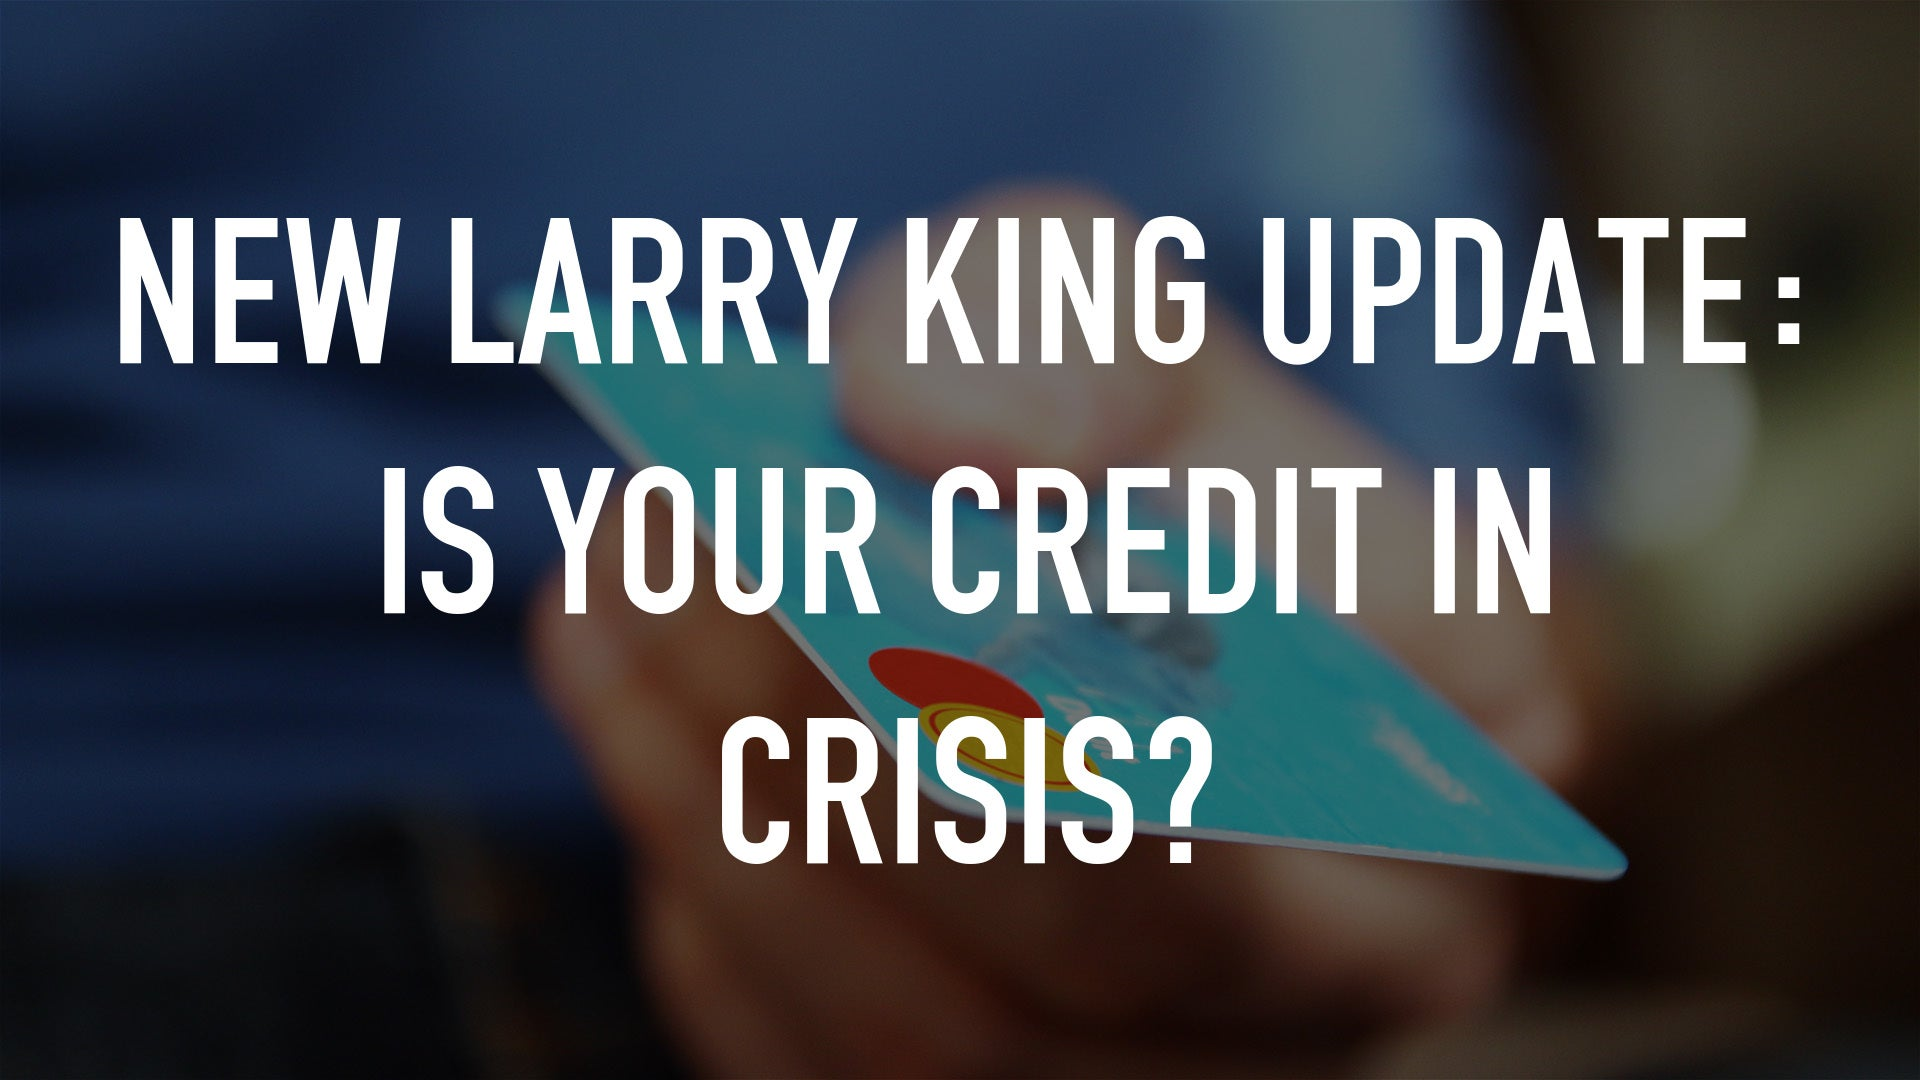 New Larry King Update: Is Your Credit In Crisis?